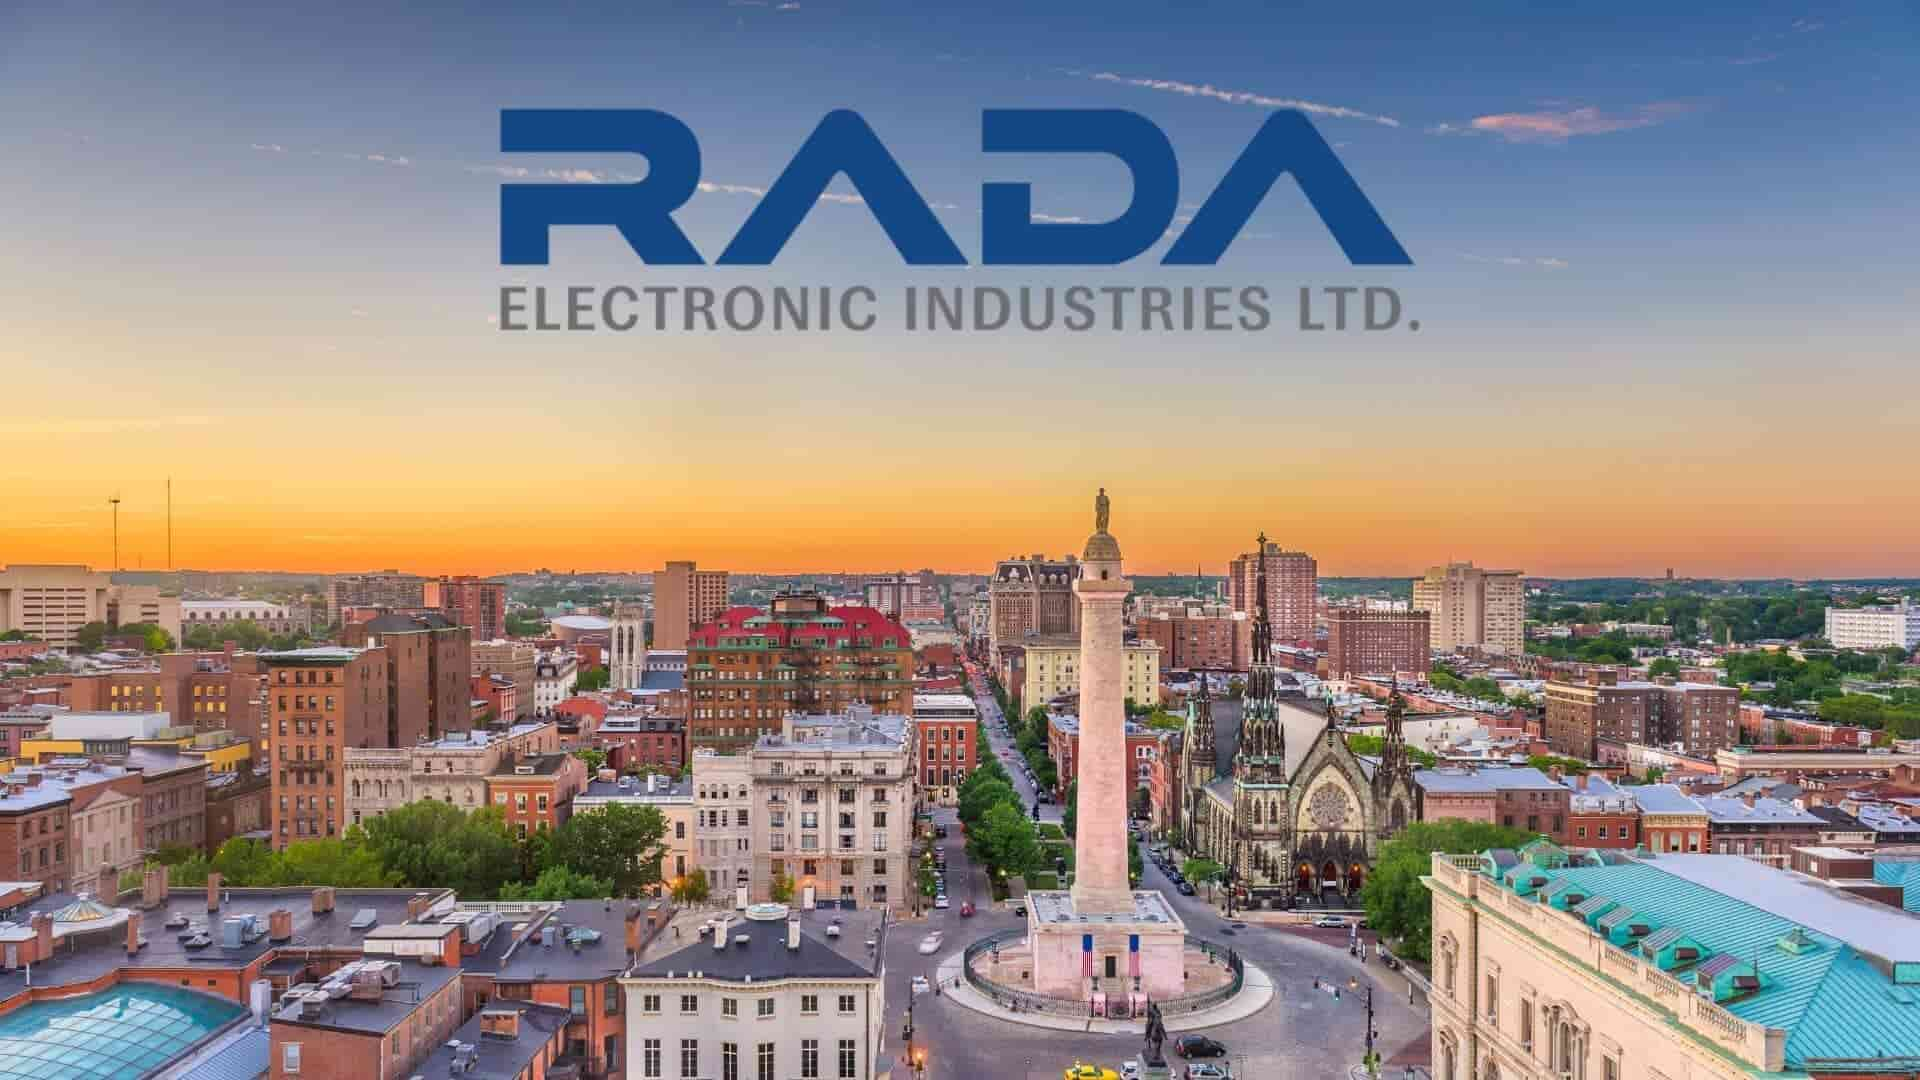 RADA Officially Opens its US Headquarters and Manufacturing Facility in Germantown